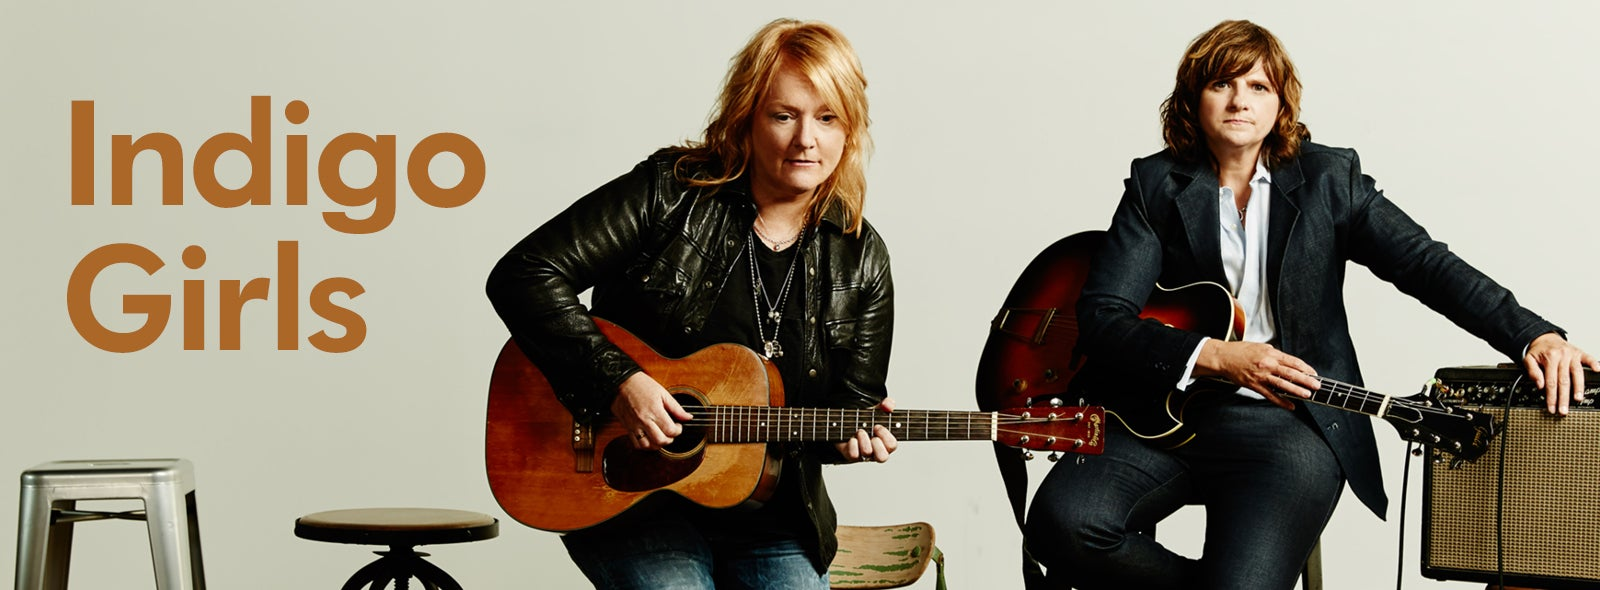 Indigo Girls 2019